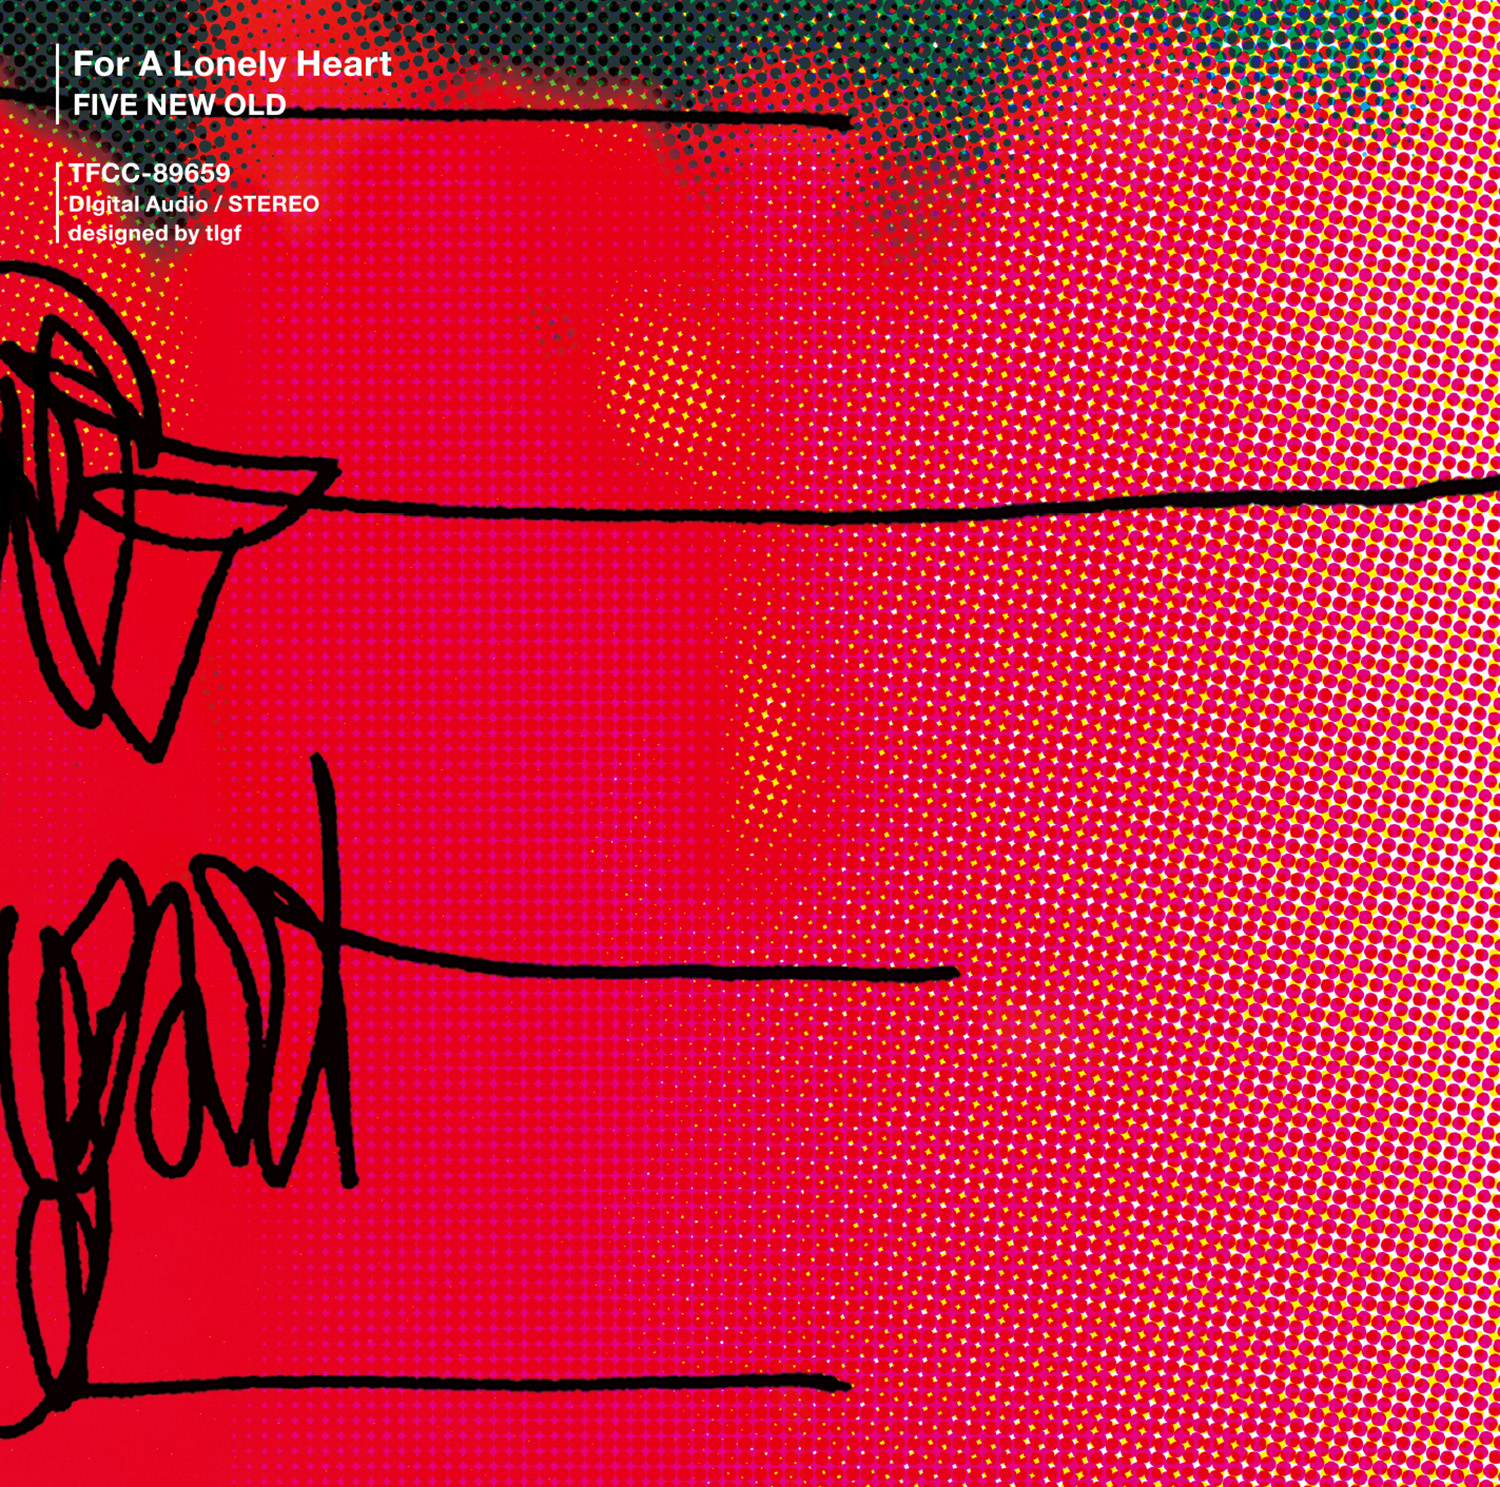 FIVE NEW OLD 「For A Lonely Heart」 CD